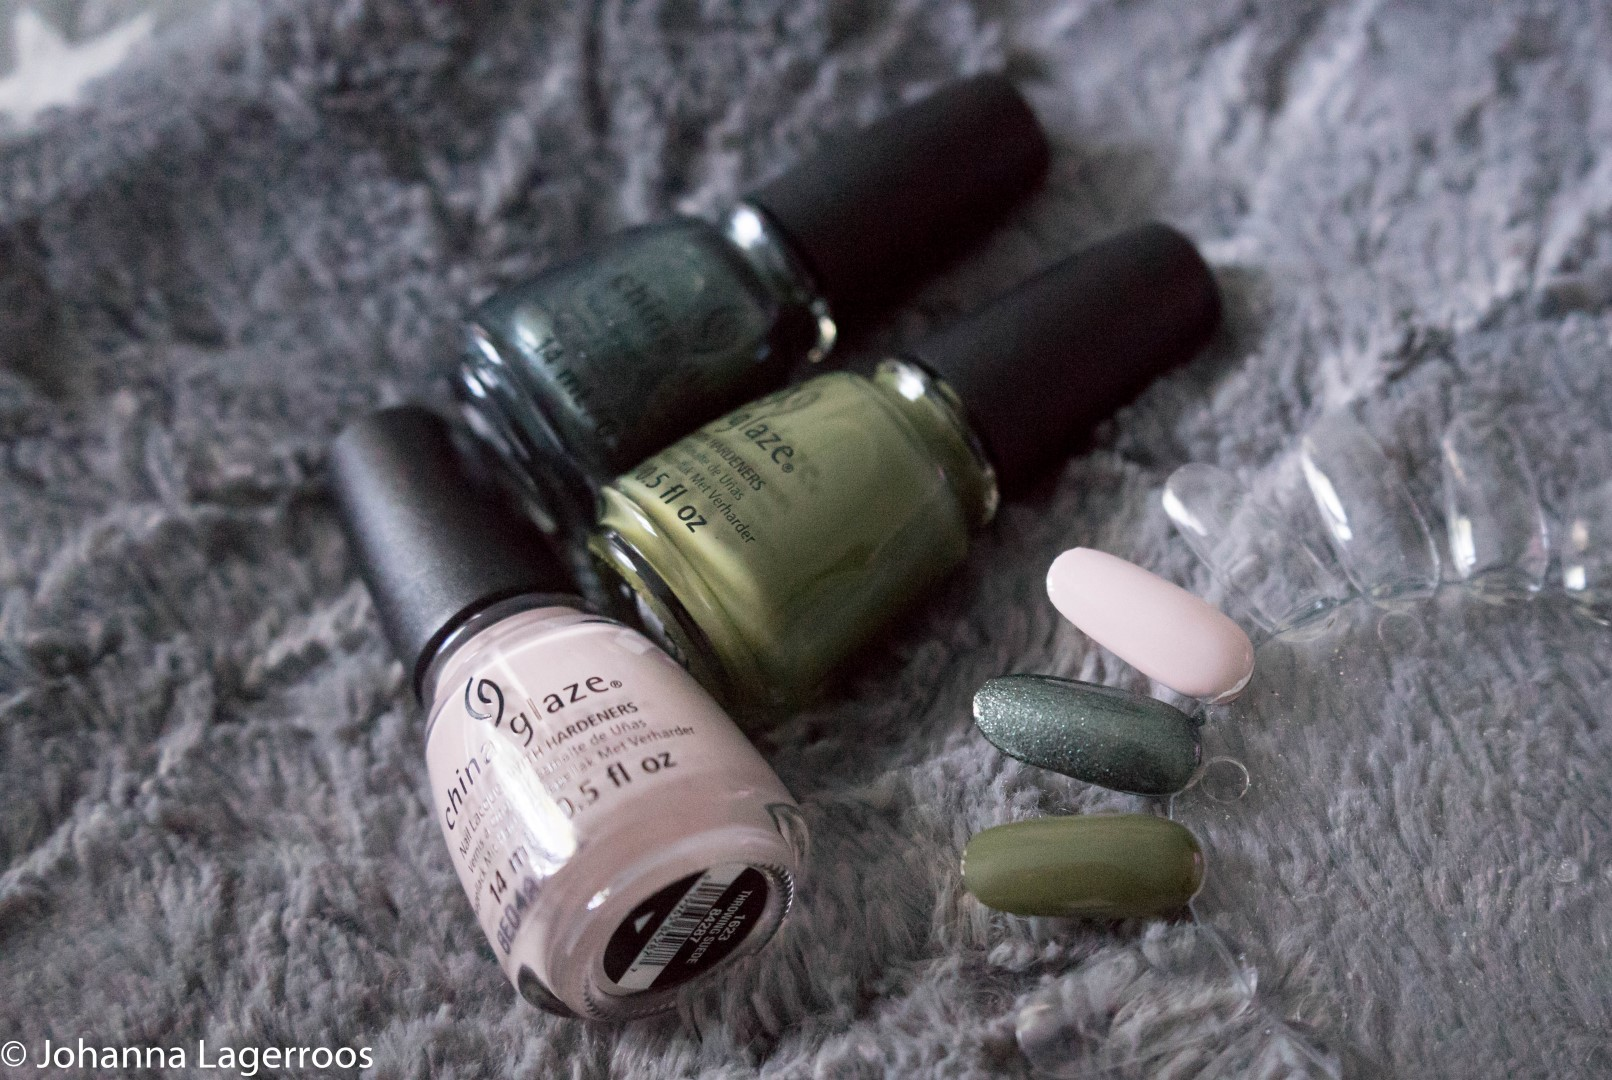 China Glaze fall 2018